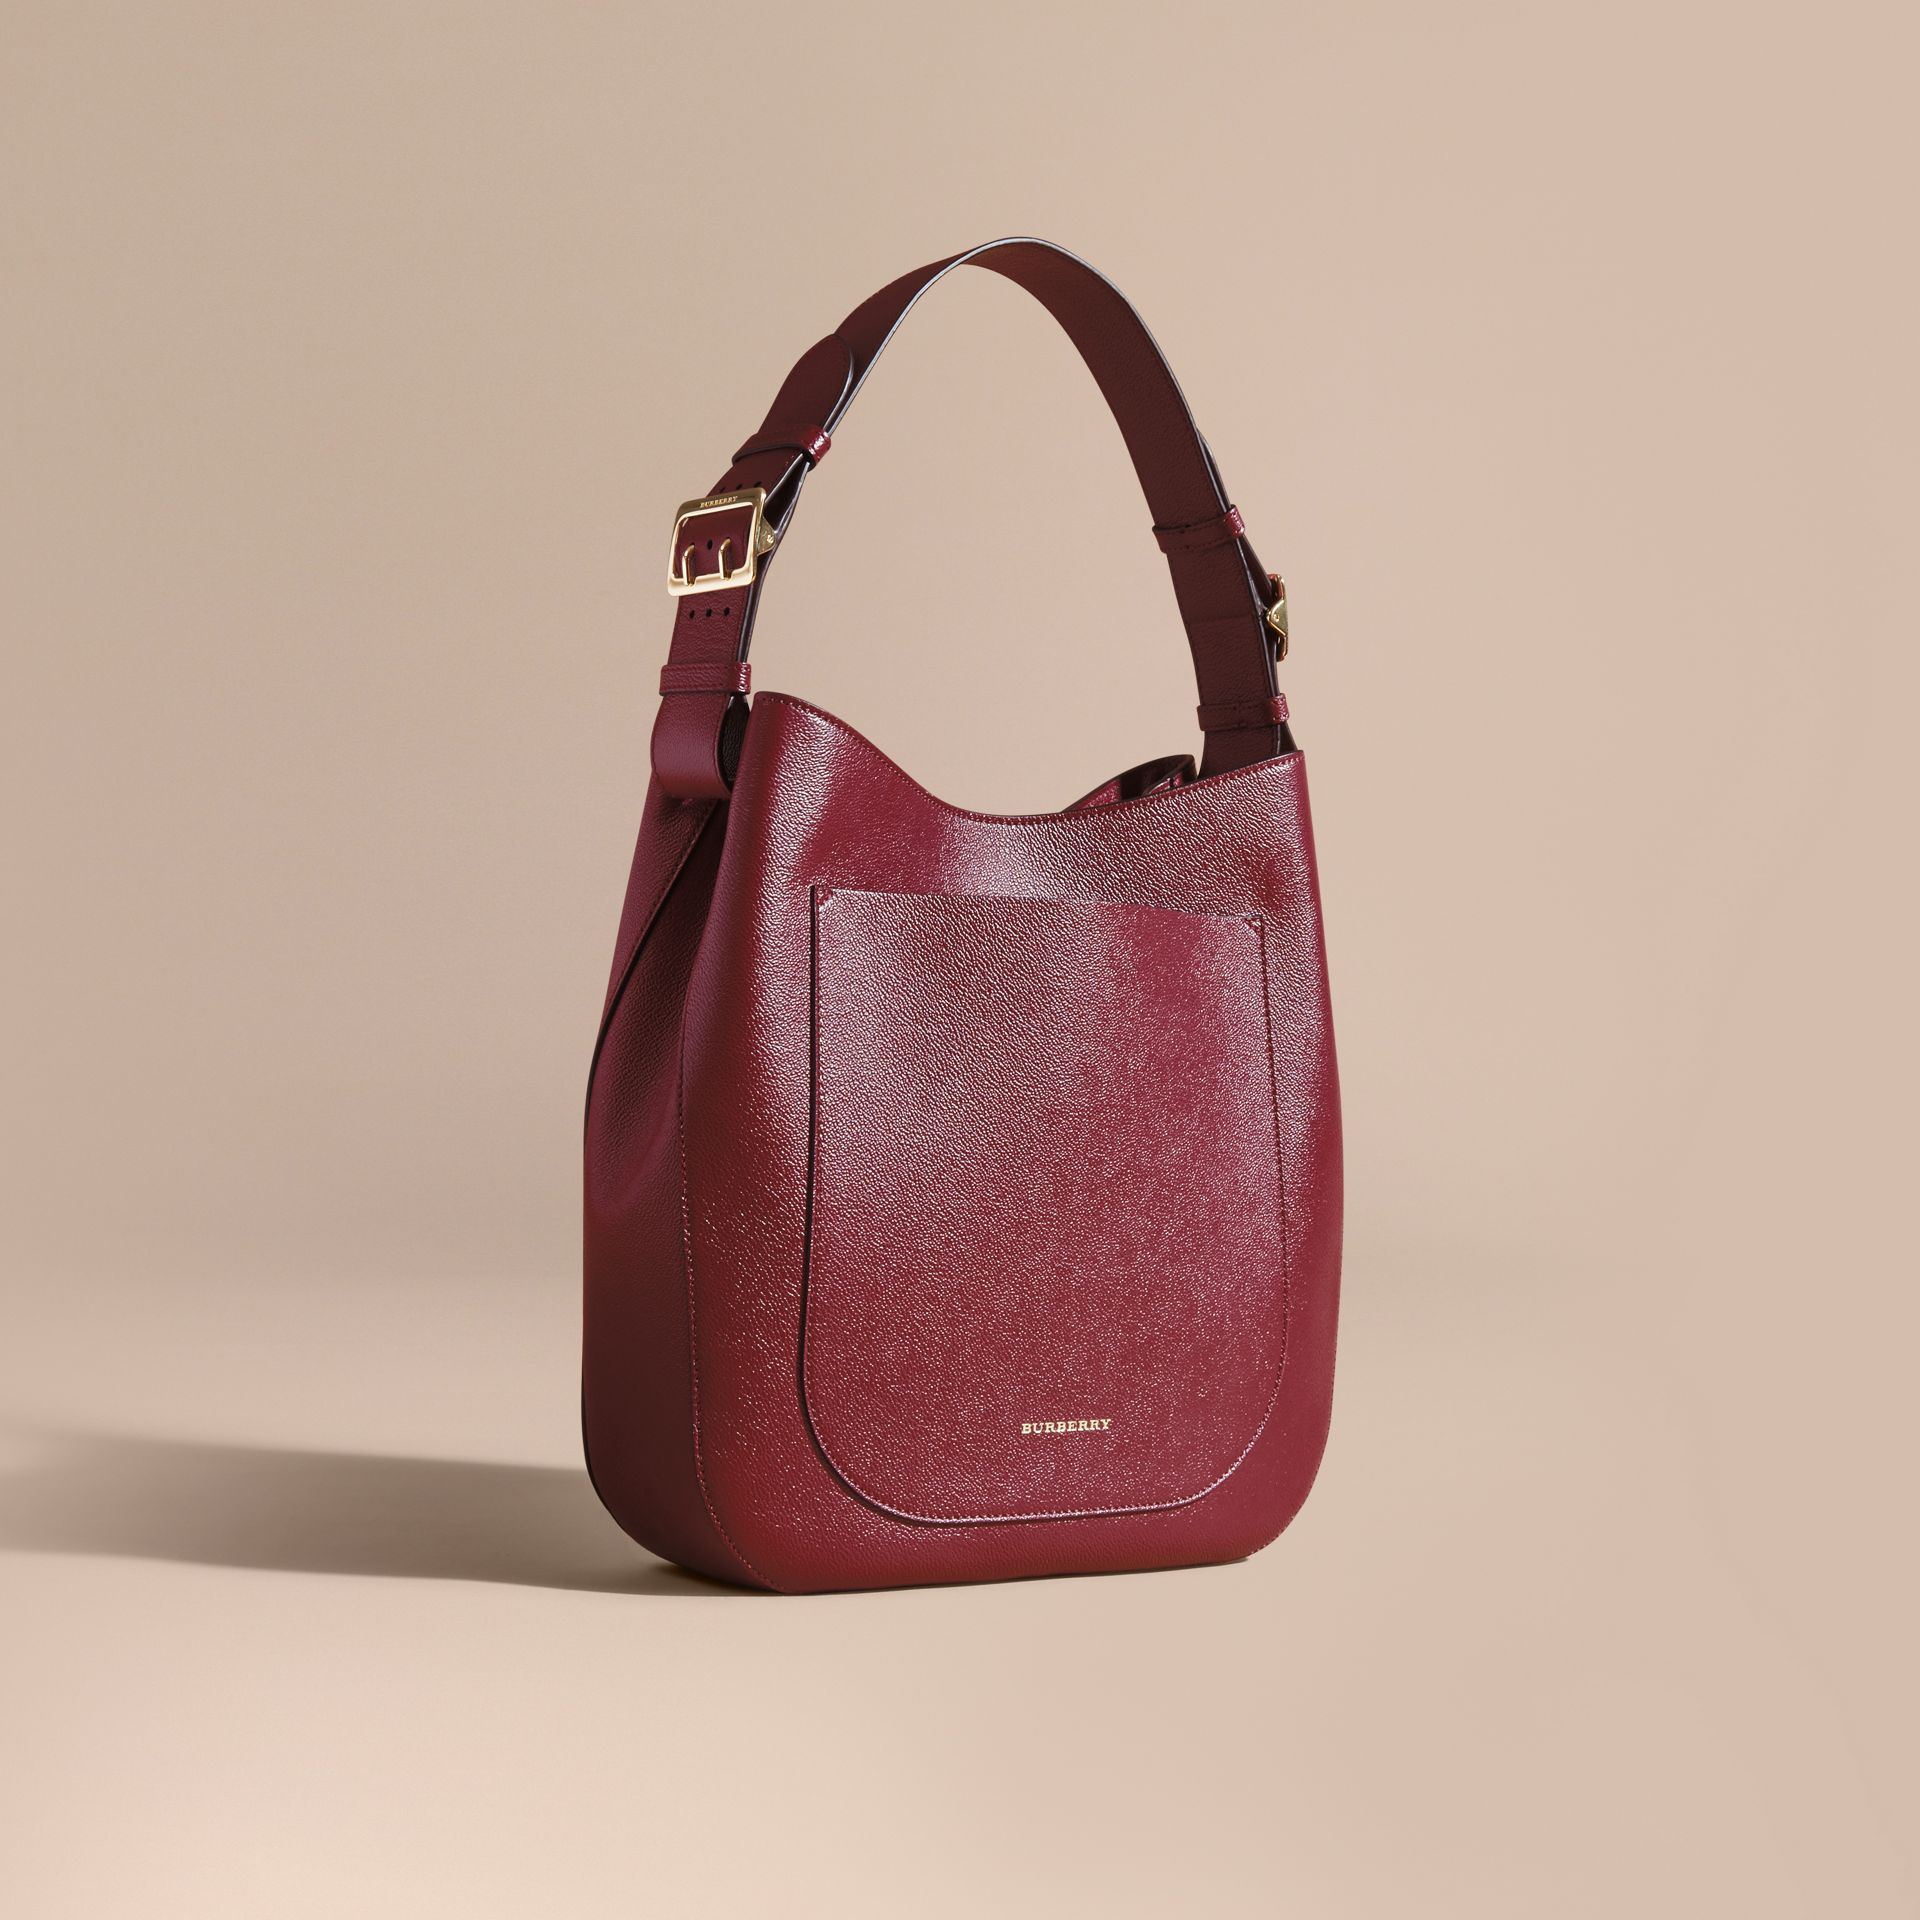 Textured Leather Shoulder Bag in Dark Plum - gallery image 1